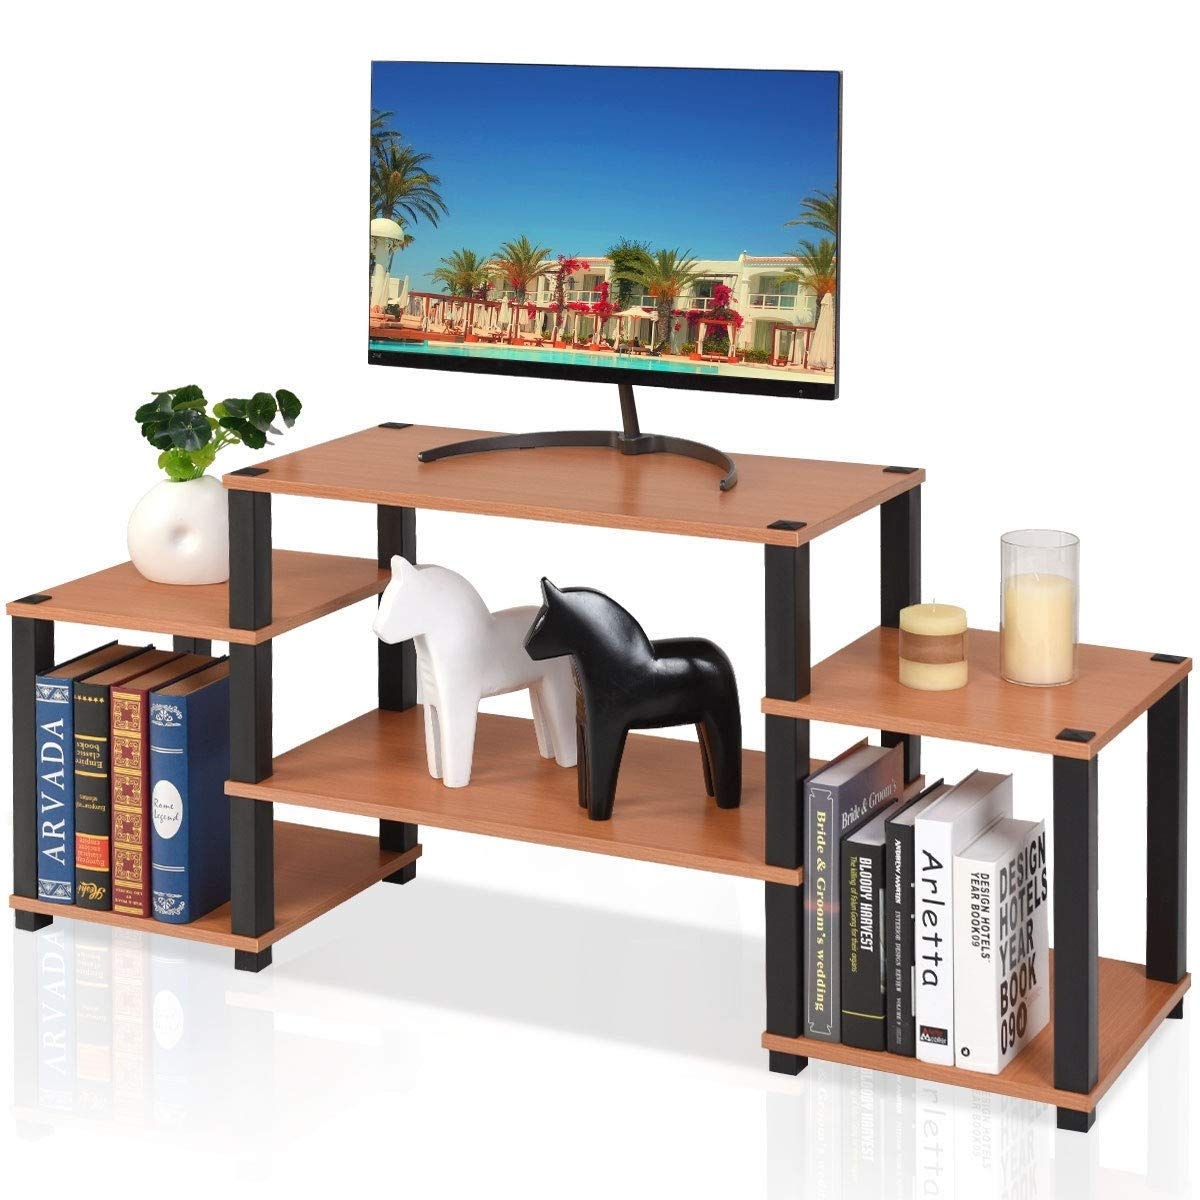 MRT SUPPLY Furniture Entertainment Storage Cabinet TV Stand with Ebook